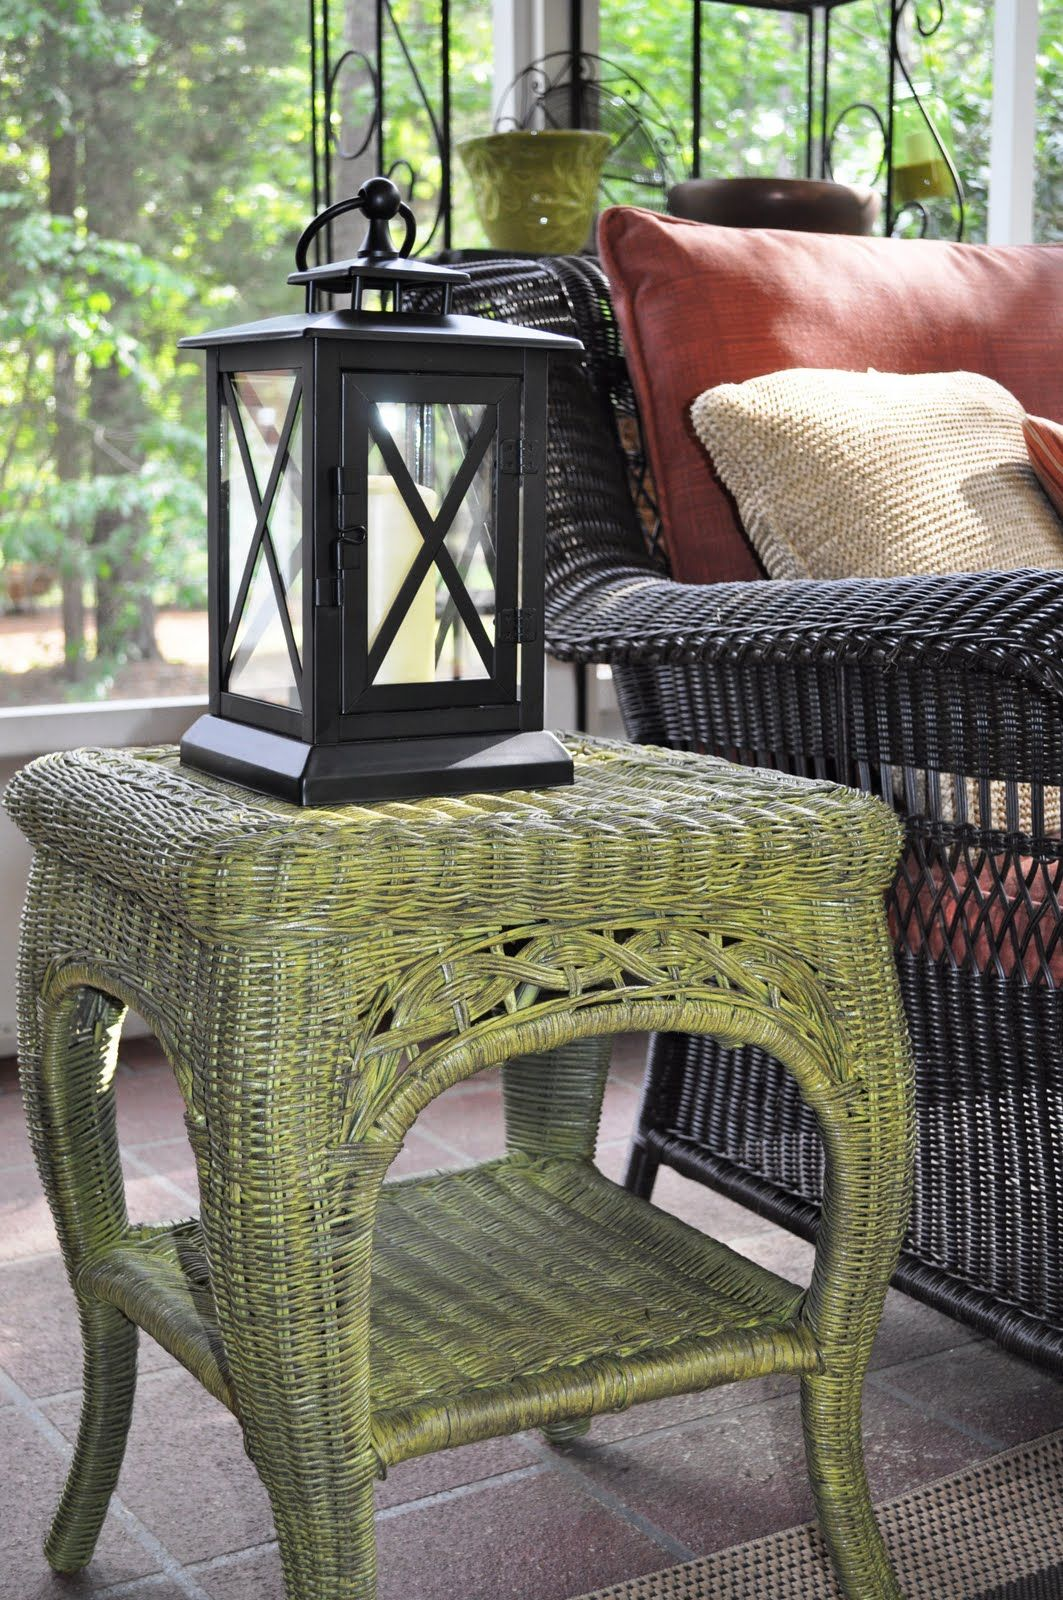 Fabulous Finish Wicker Table Revamped Guest Post Painting Wicker Furniture Painted Wicker